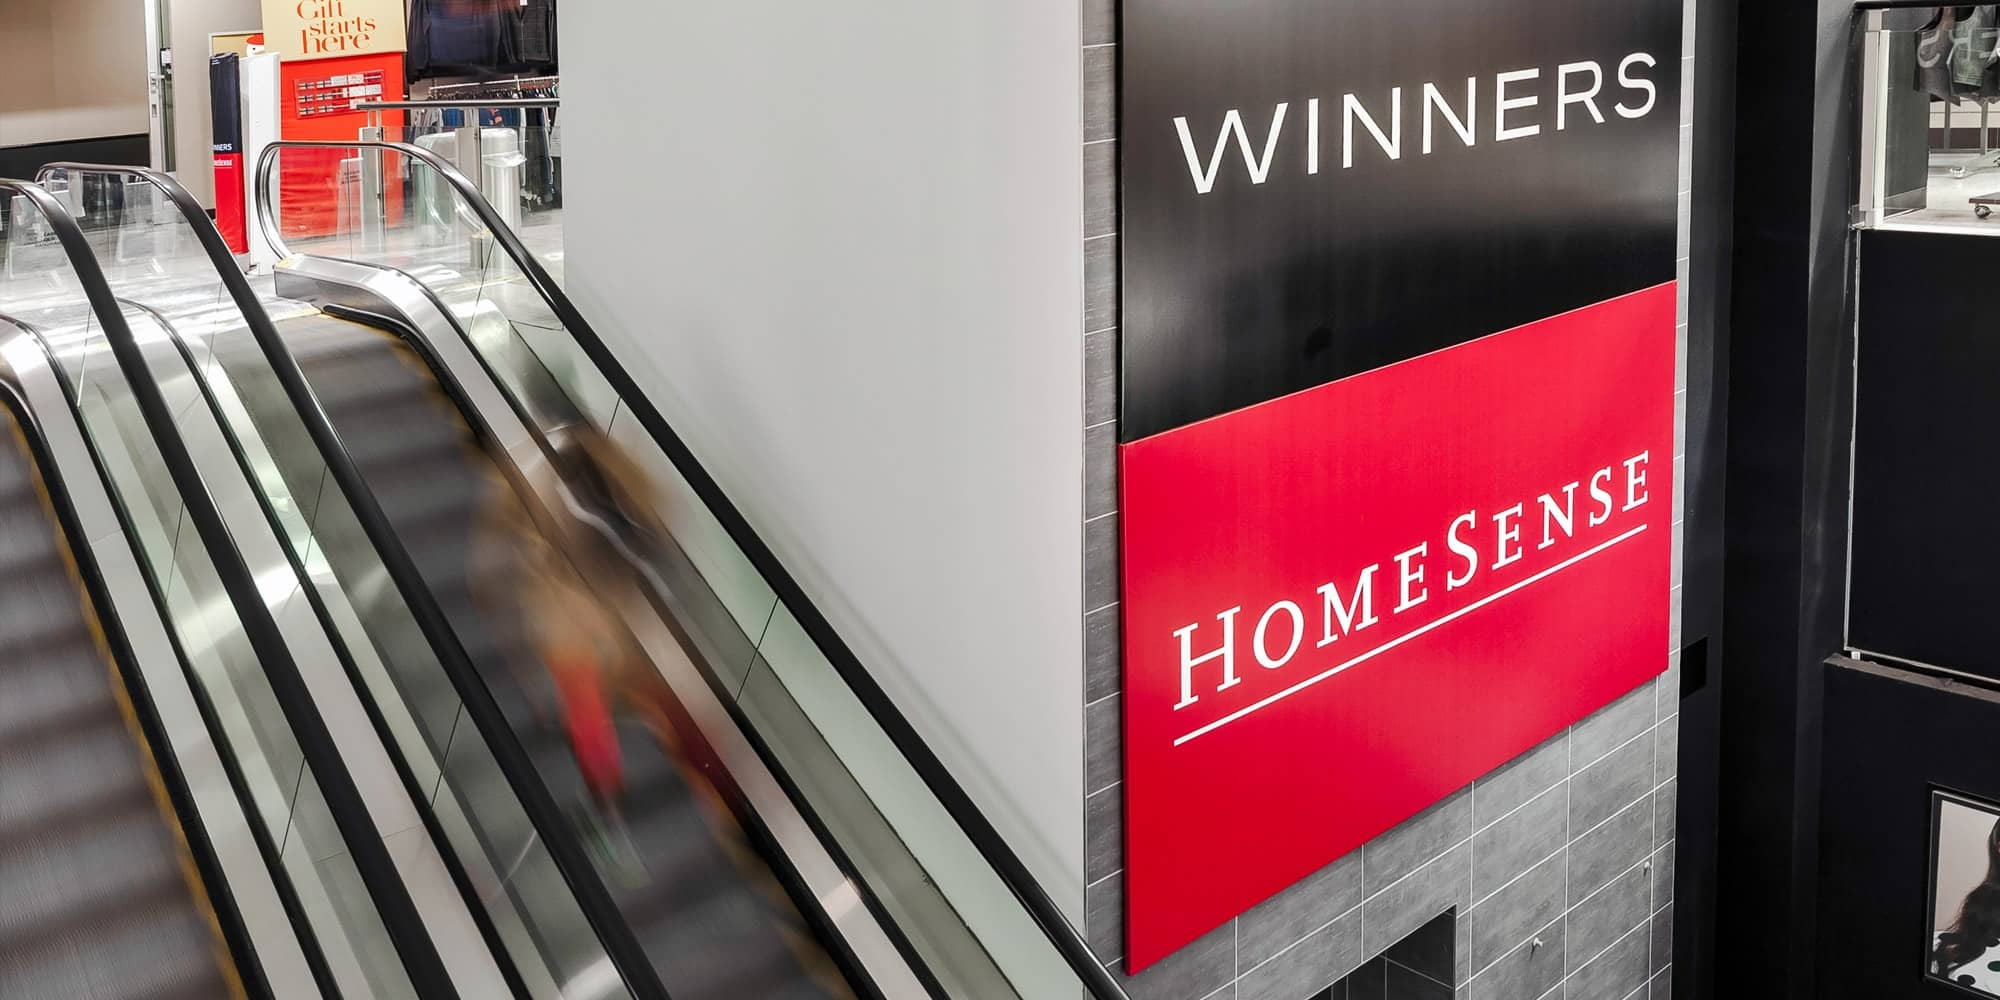 Homesense Winners Interior